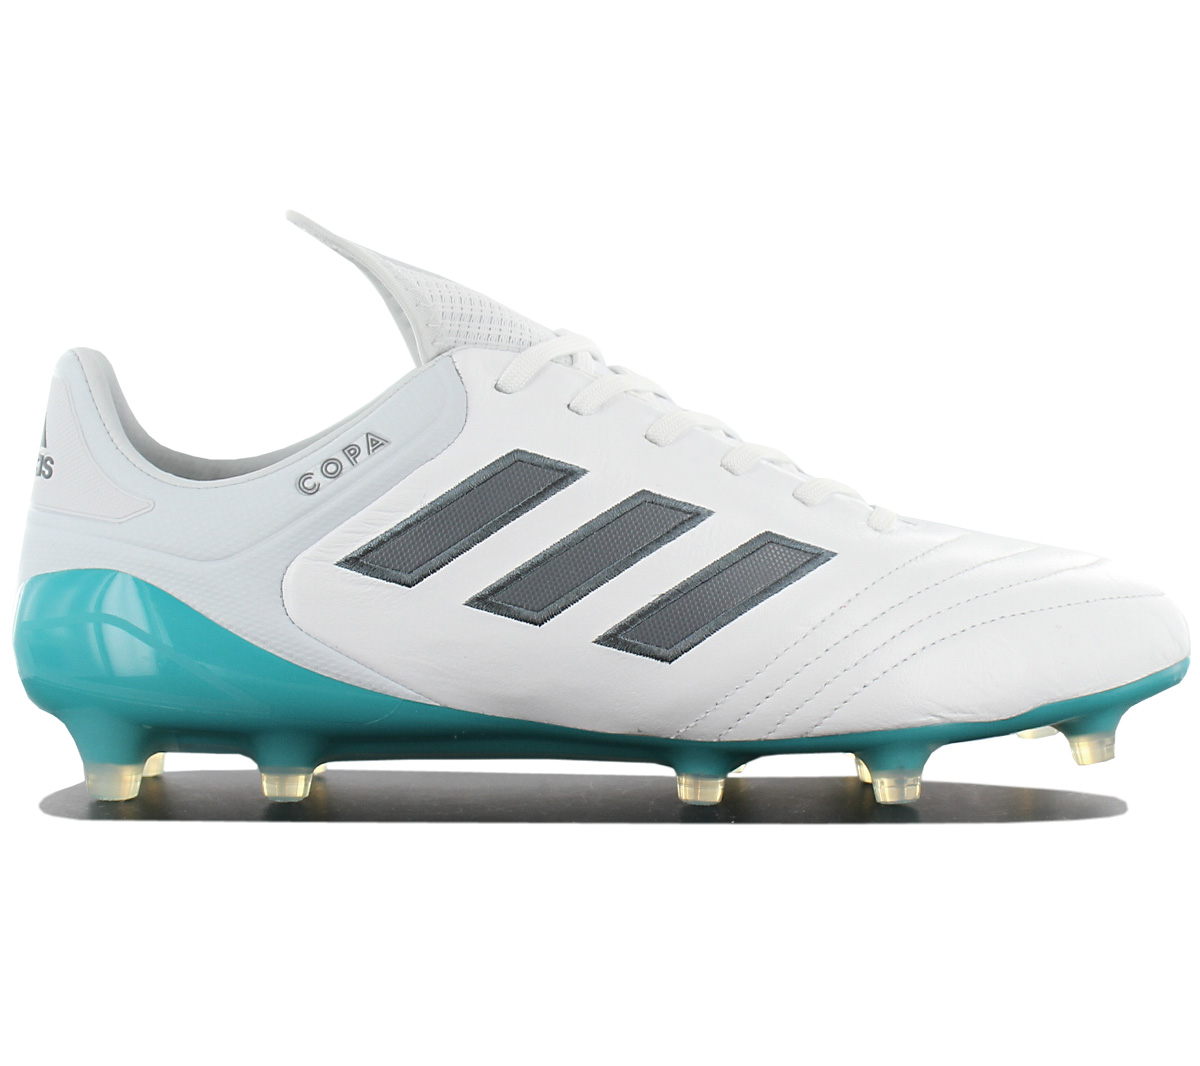 7d7b20d5 Adidas Copa 17.1 Fg Men's Football Boots Leather White Studs Mundial ...